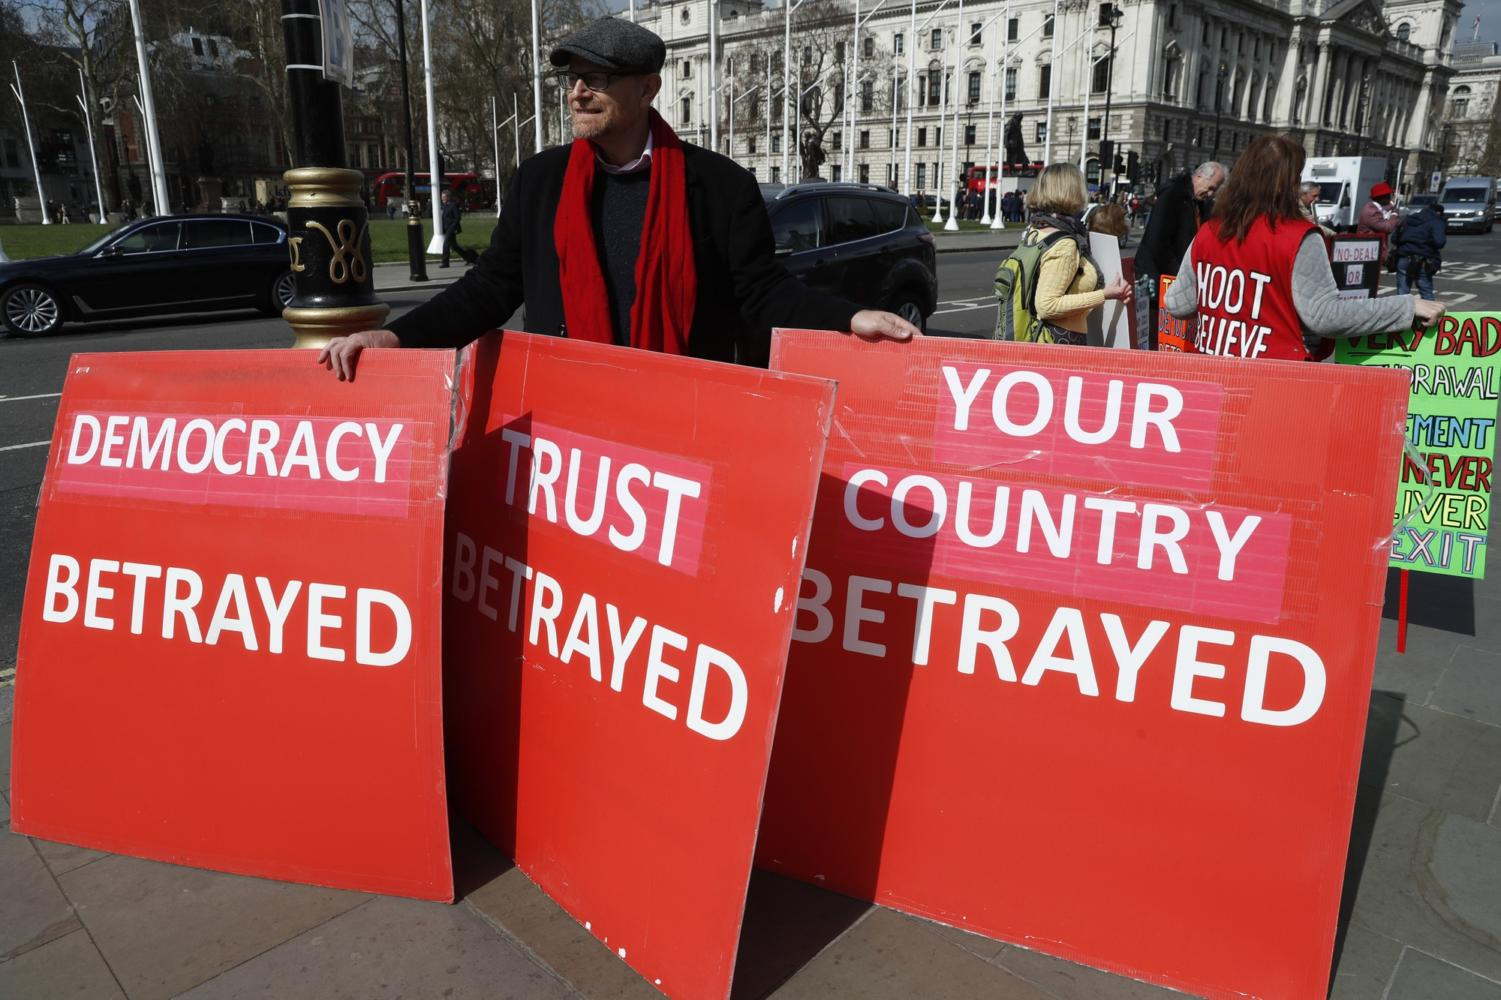 A pro-Brexit protester holds onto placards as he demonstrates near the House of Parliament in London, Tuesday, March 26, 2019. British Prime Minister Theresa May's government says Parliament's decision to take control of the stalled process of leaving the European Union underscores the need for lawmakers to approve her twice-defeated deal. (AP Photo/Alastair Grant)